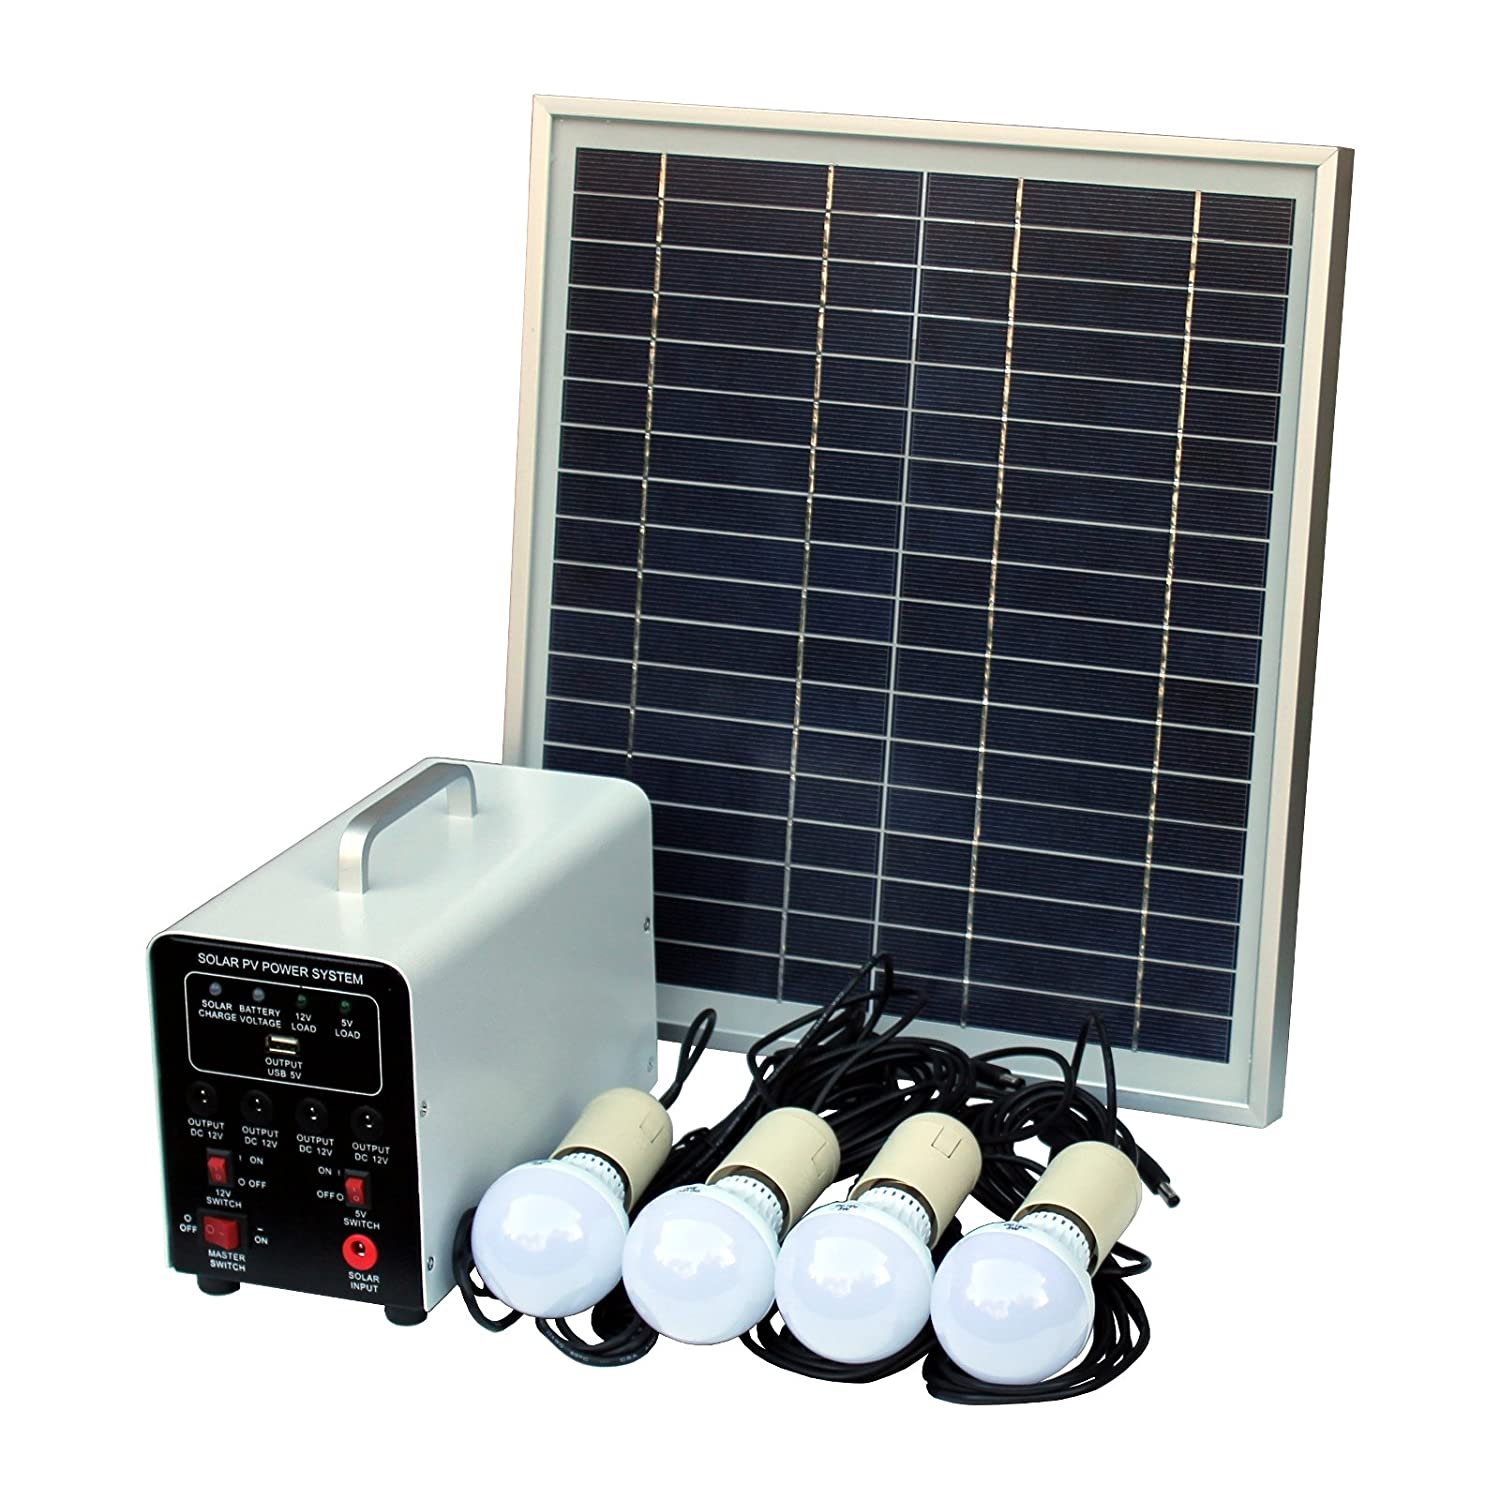 15W Off-Grid Solar Lighting System with 4 LED Lights, Solar Panel, Battery and Cables - Complete Solar Lighting Kit Photonic Universe SL-15W